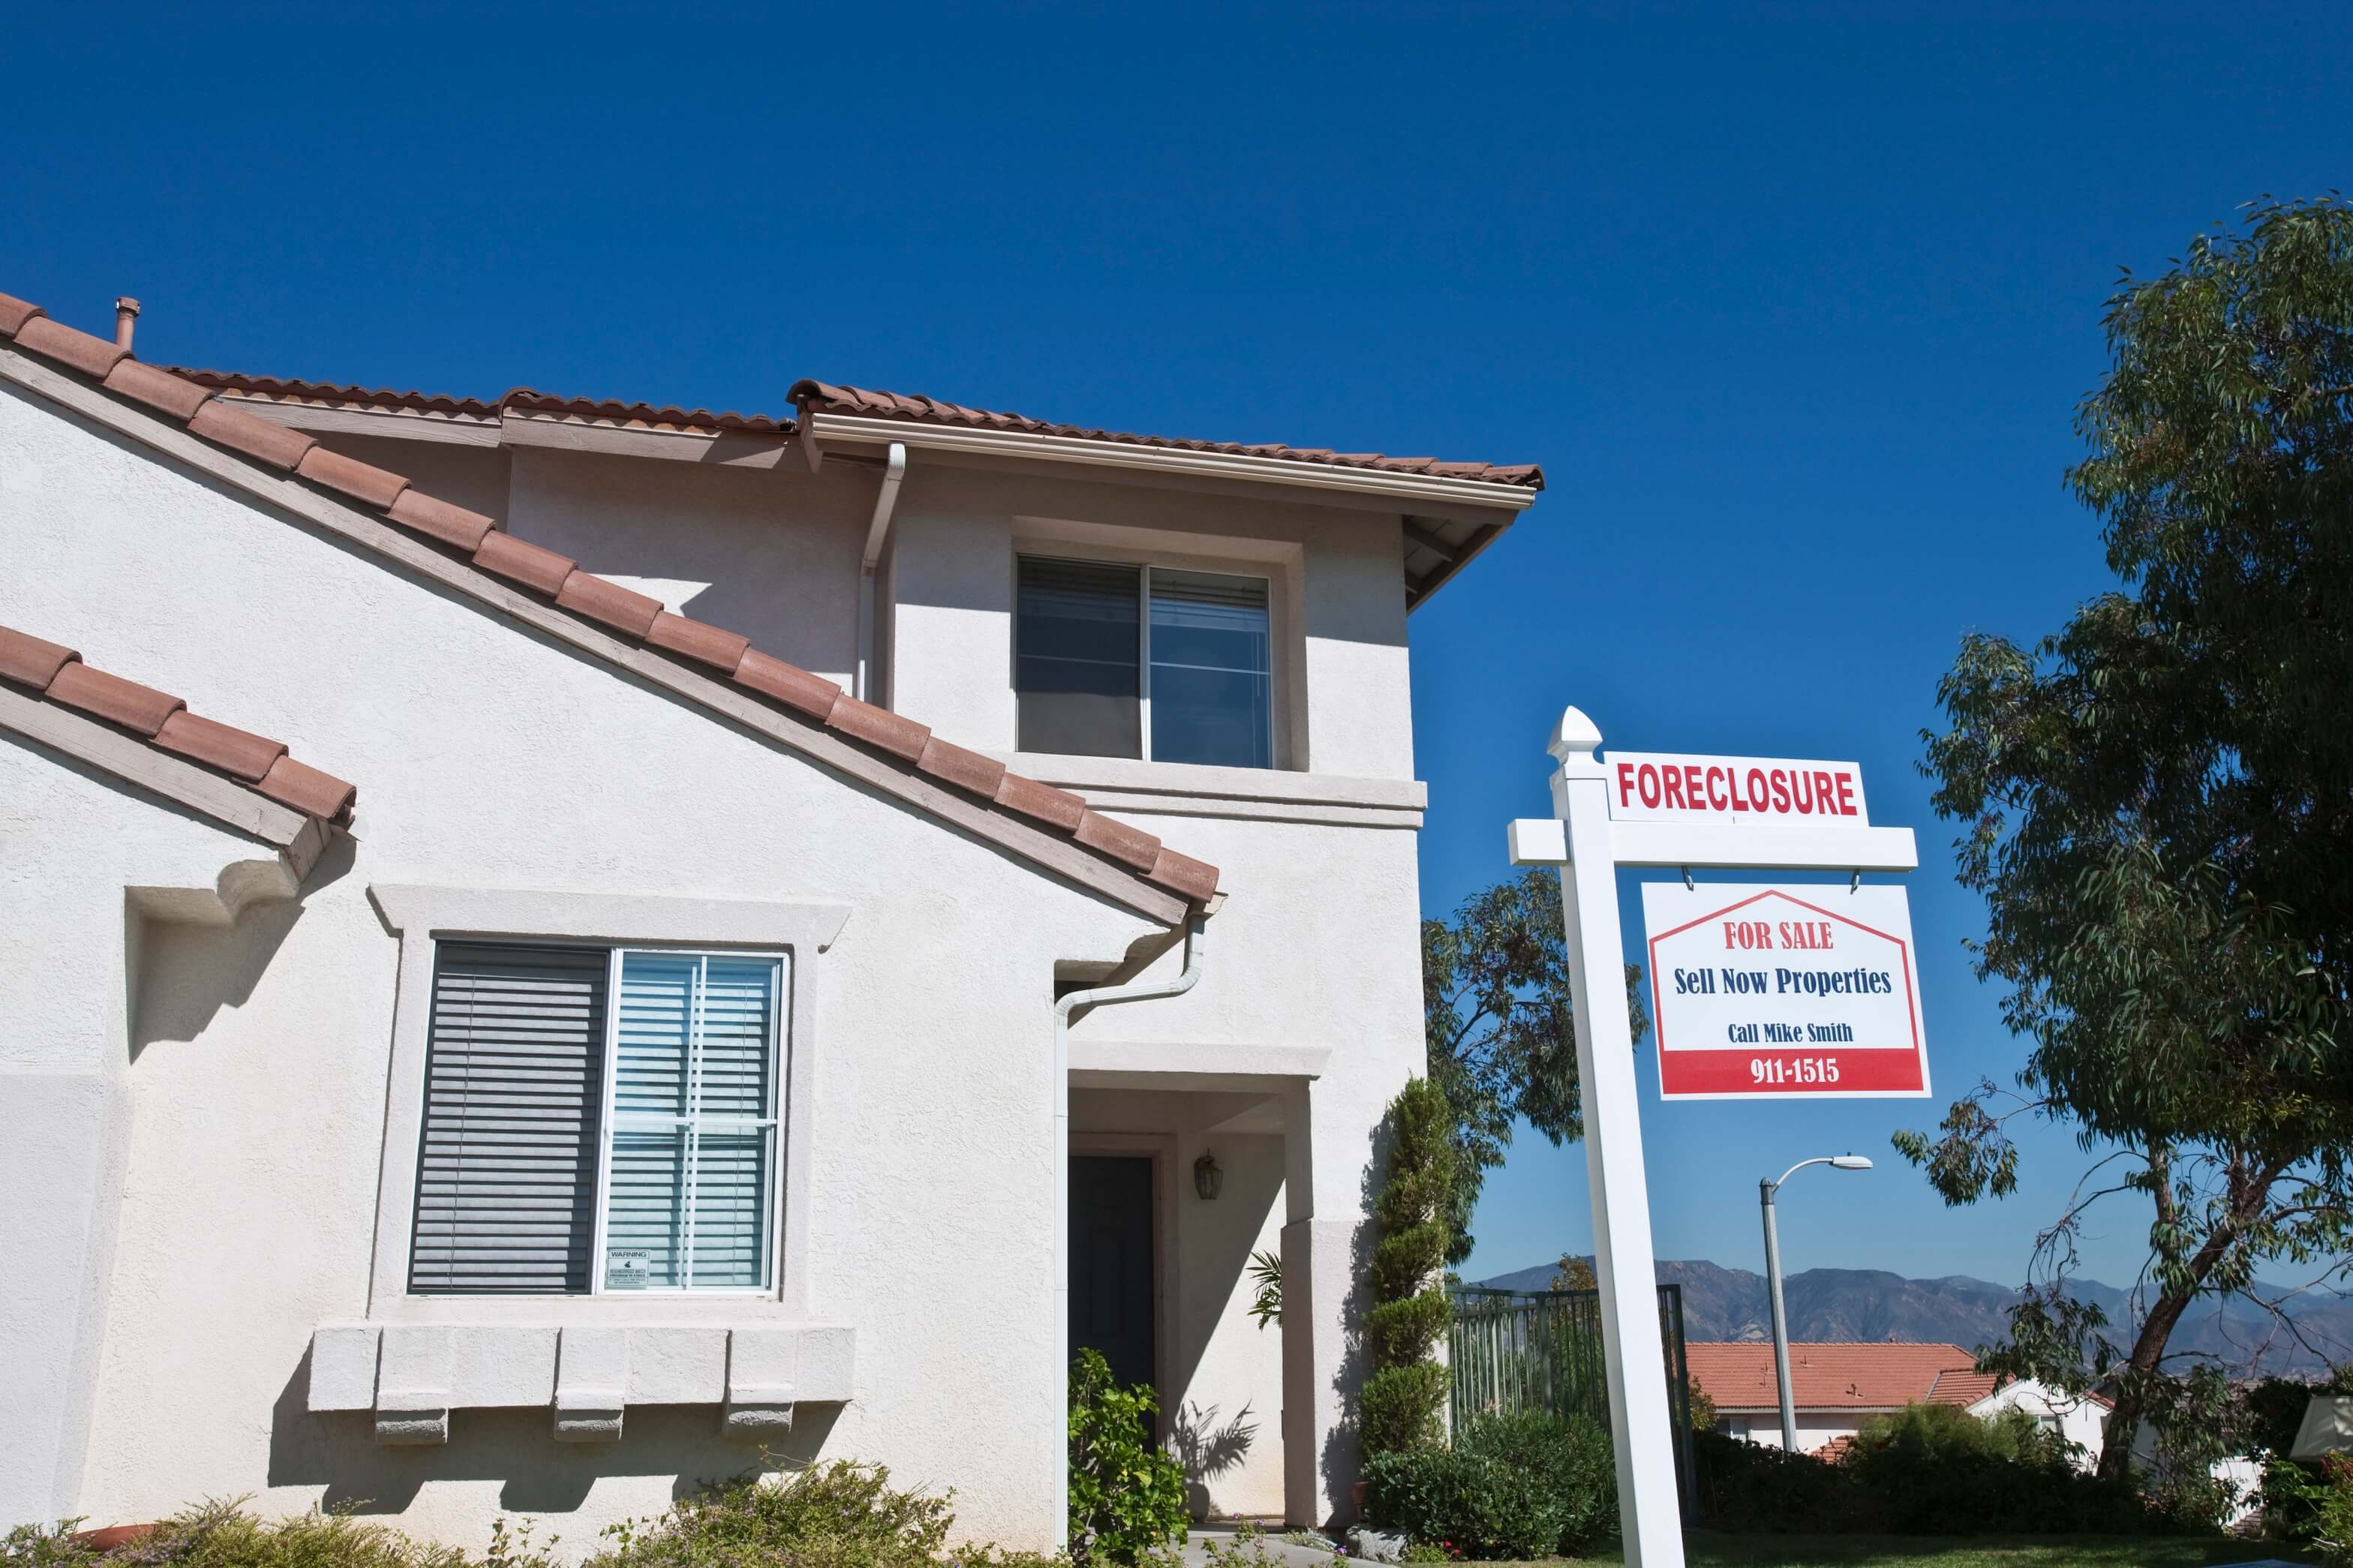 Foreclosure and Florida Probate Administrations